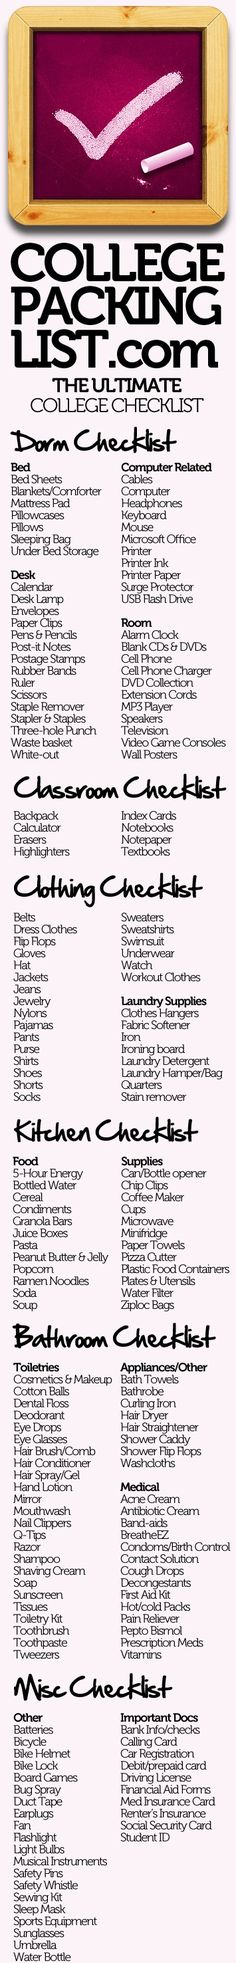 ultimate college packing list - also an iPhone app This site has a lot of other really awesome dorm info! ultimate college packing list - also an iPhone app This site has a lot of other really awesome dorm info! College Packing Checklist, Packing Hacks, Dorm Checklist, College Essentials, College Planning, College Necessities, University Checklist, Apartment Checklist, Moving Checklist